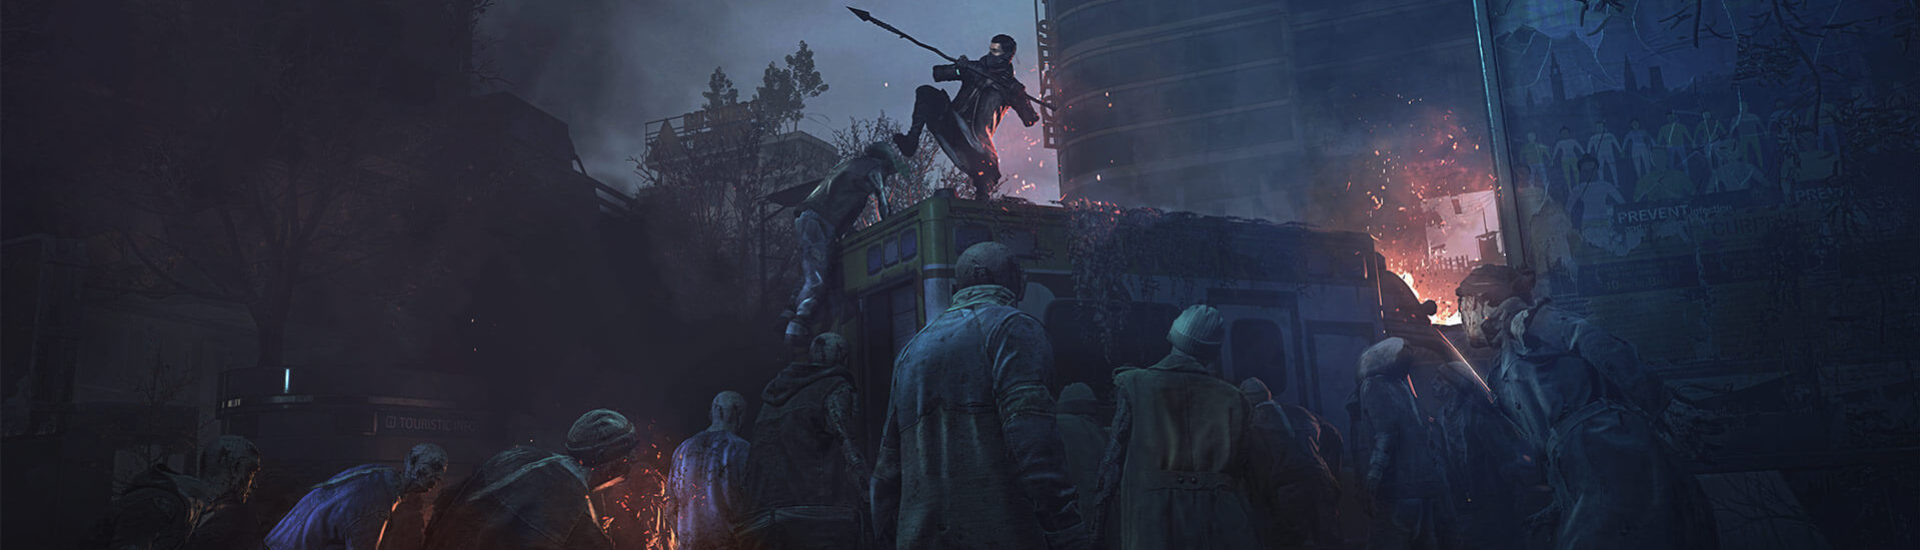 Dying Light 2: Neues Gameplay und fester Release-Termin